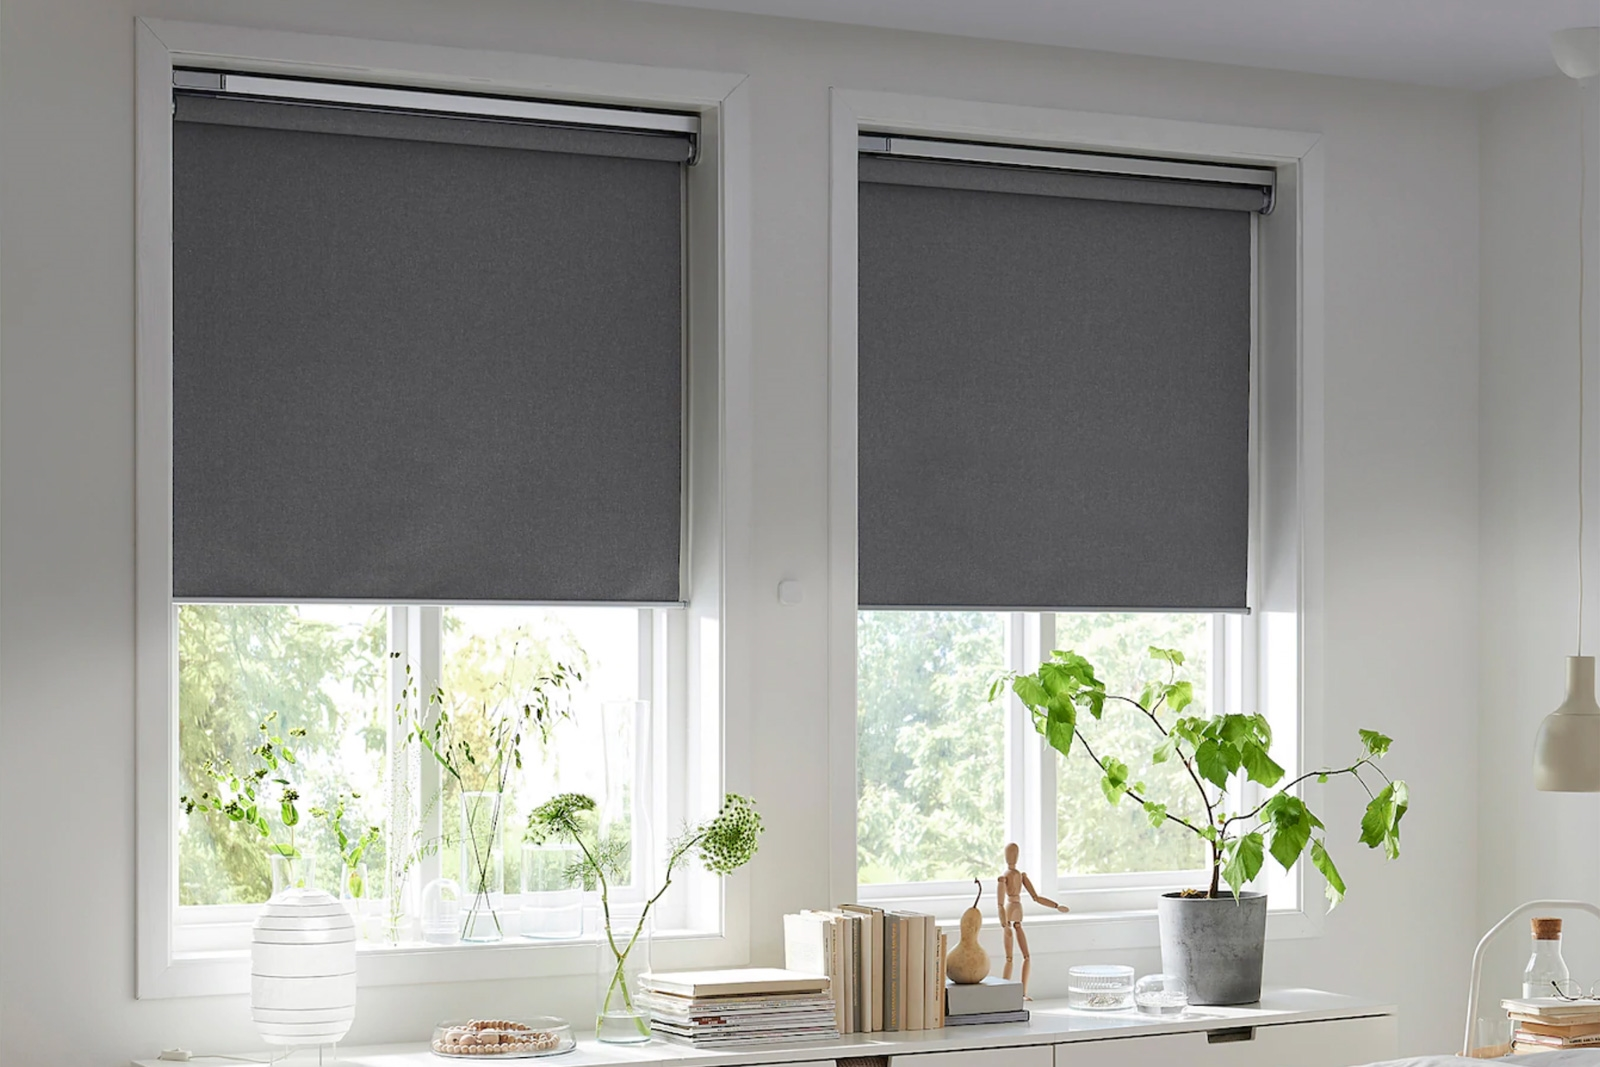 IKEA's smart blinds are finally available to buy online   DeviceDaily.com